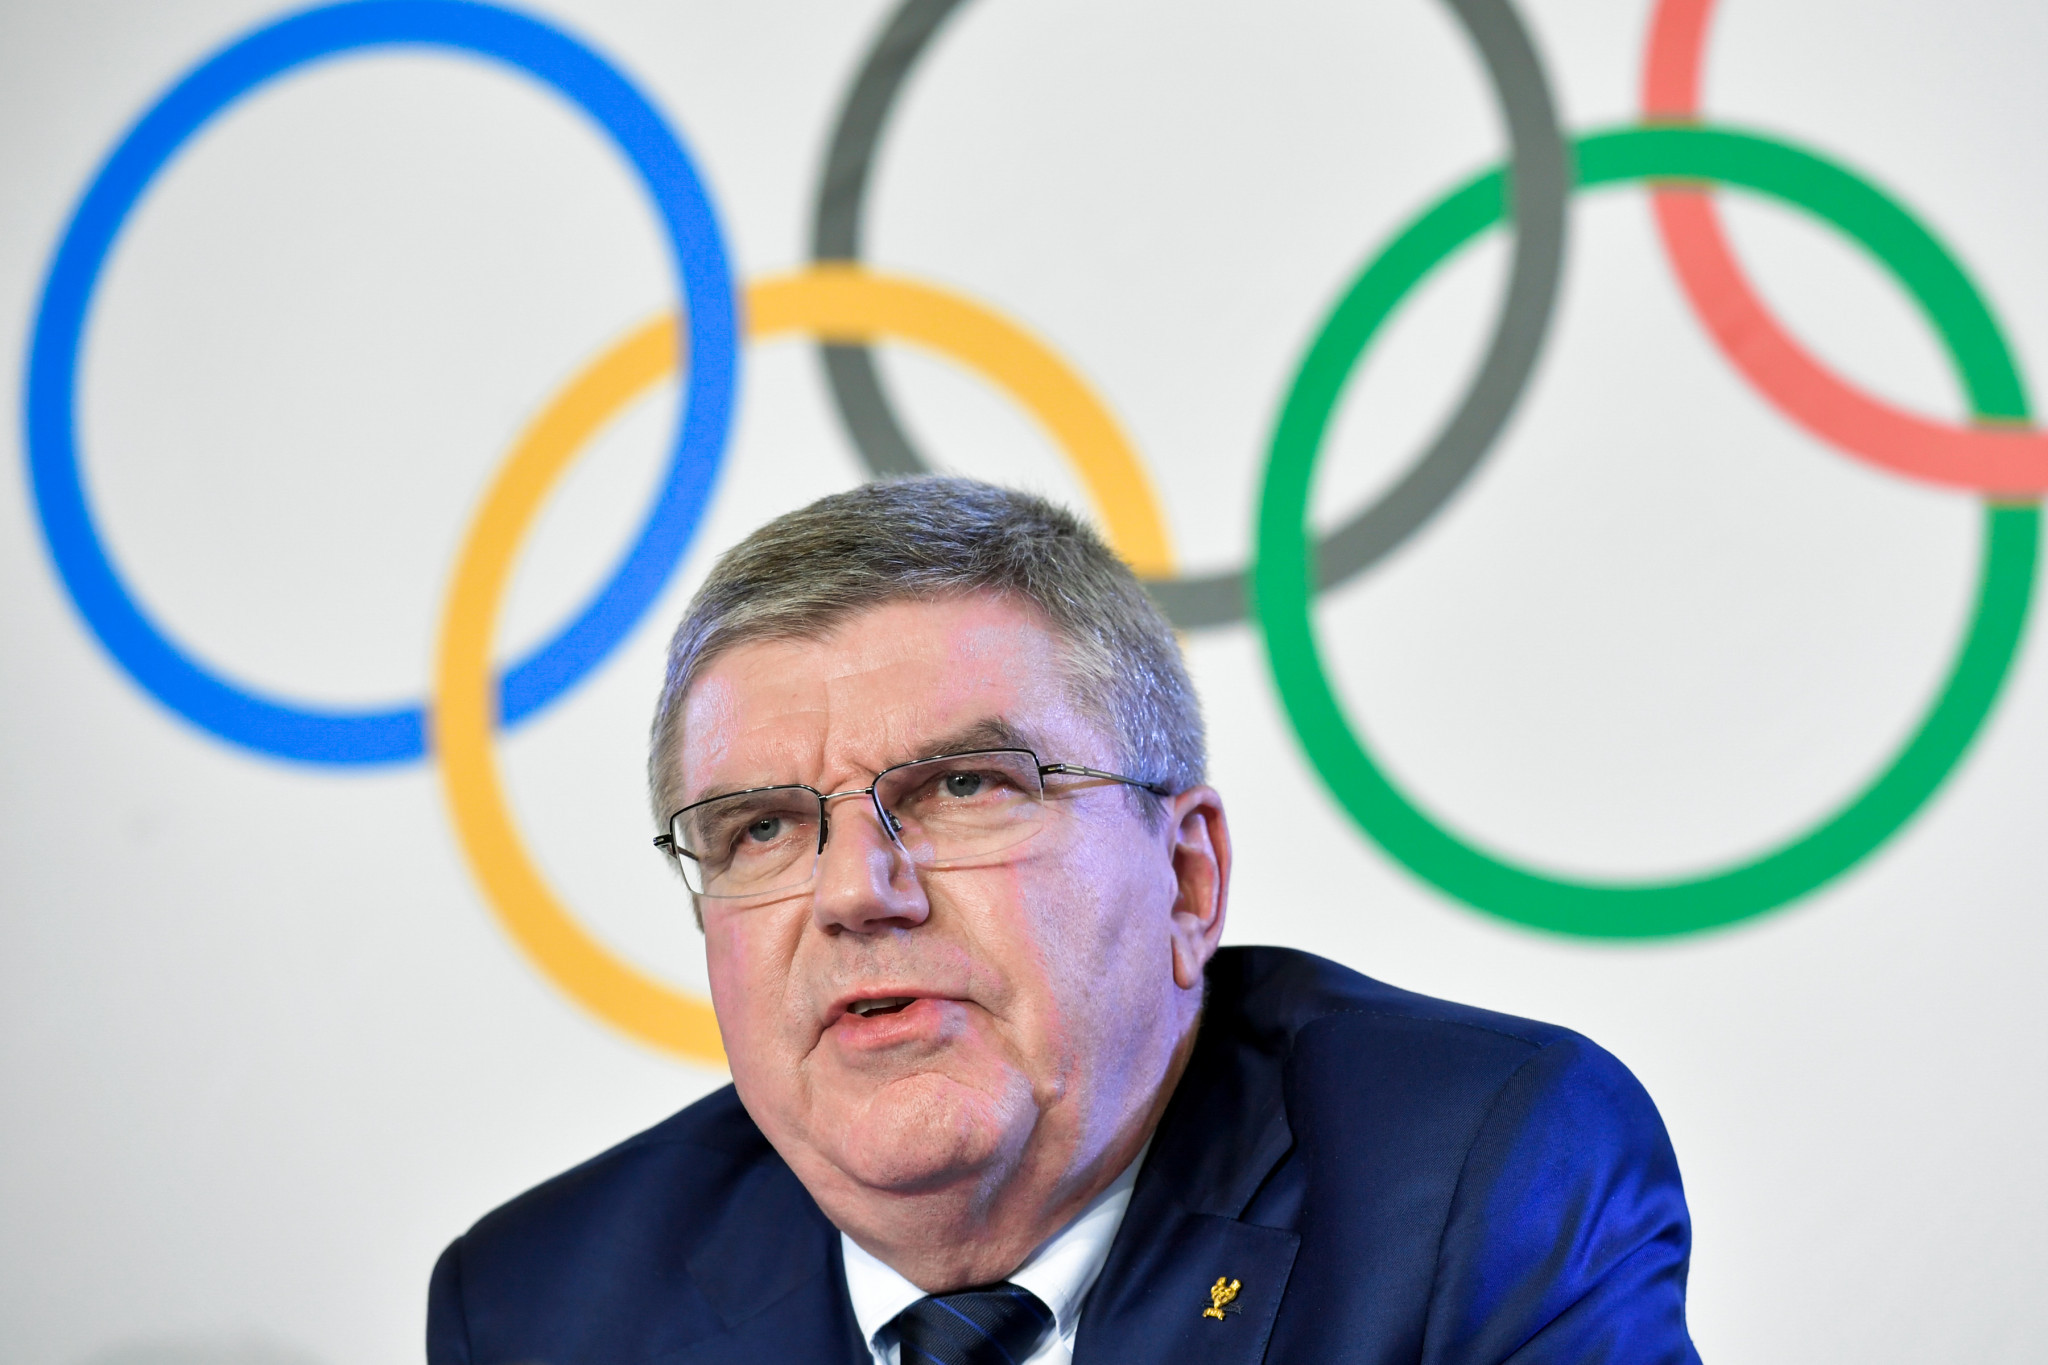 Thomas Bach claimed the IOC's decision would draw a line under the whole affair ©Getty Images